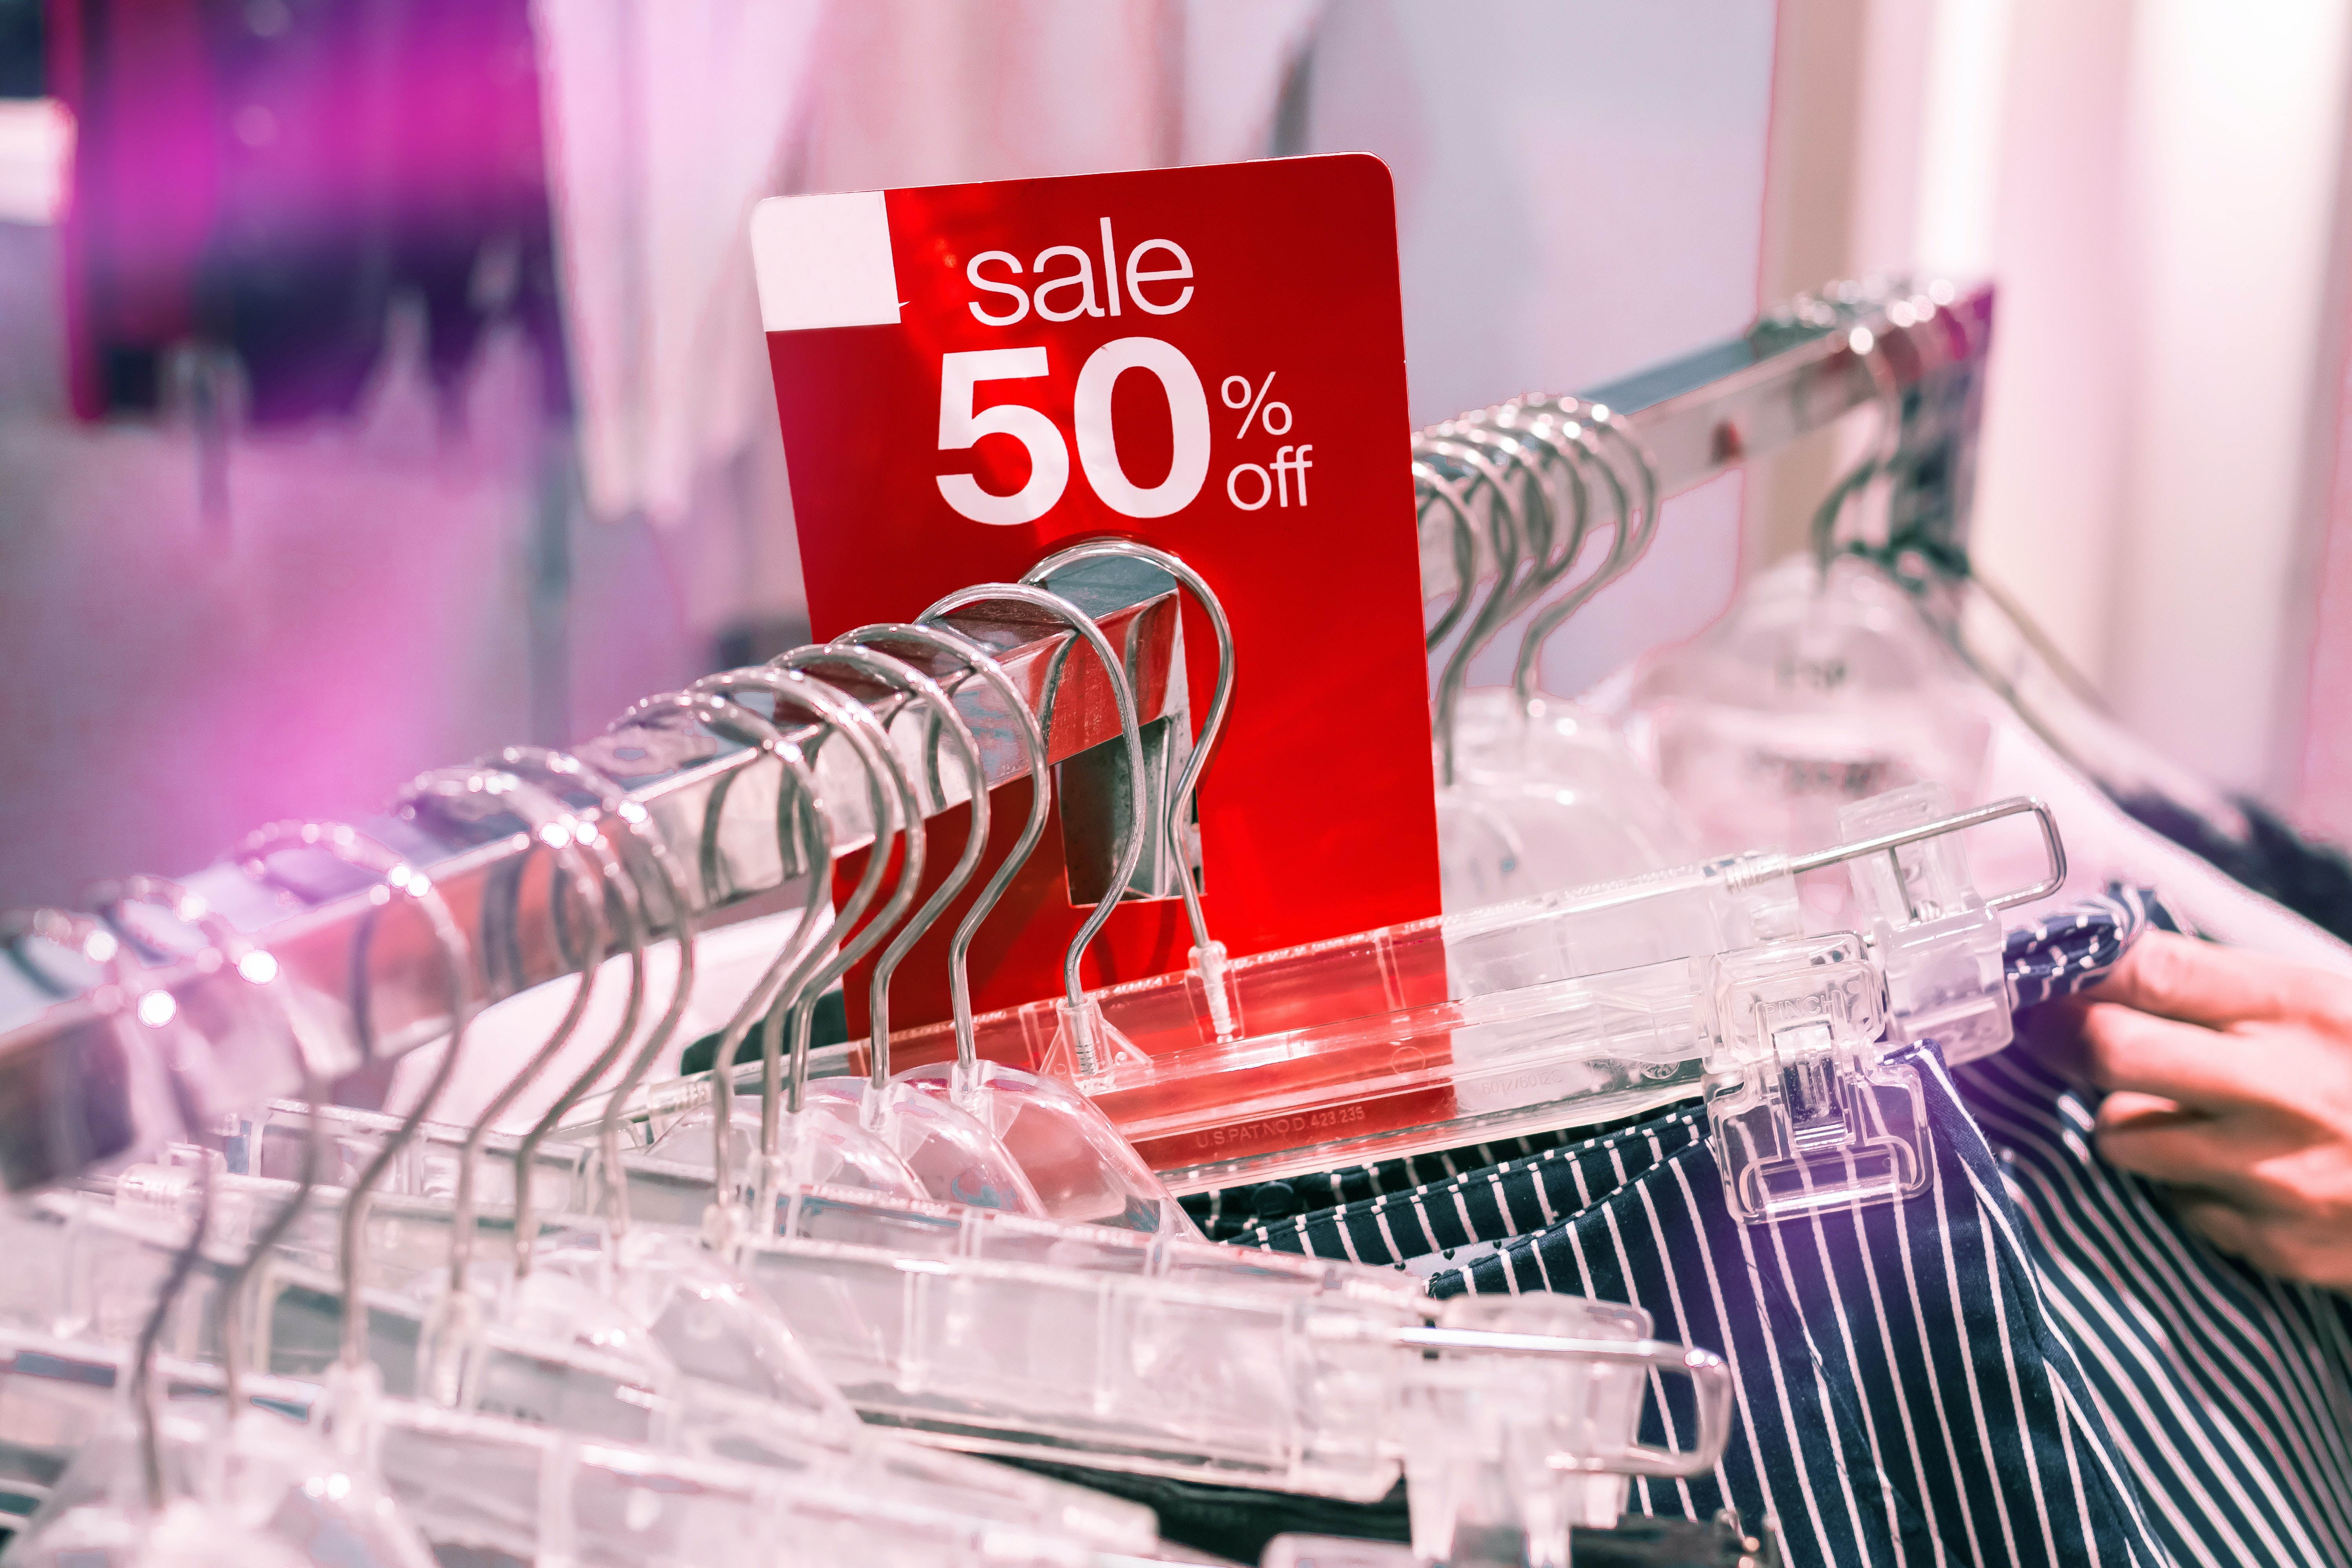 on sale clothing items